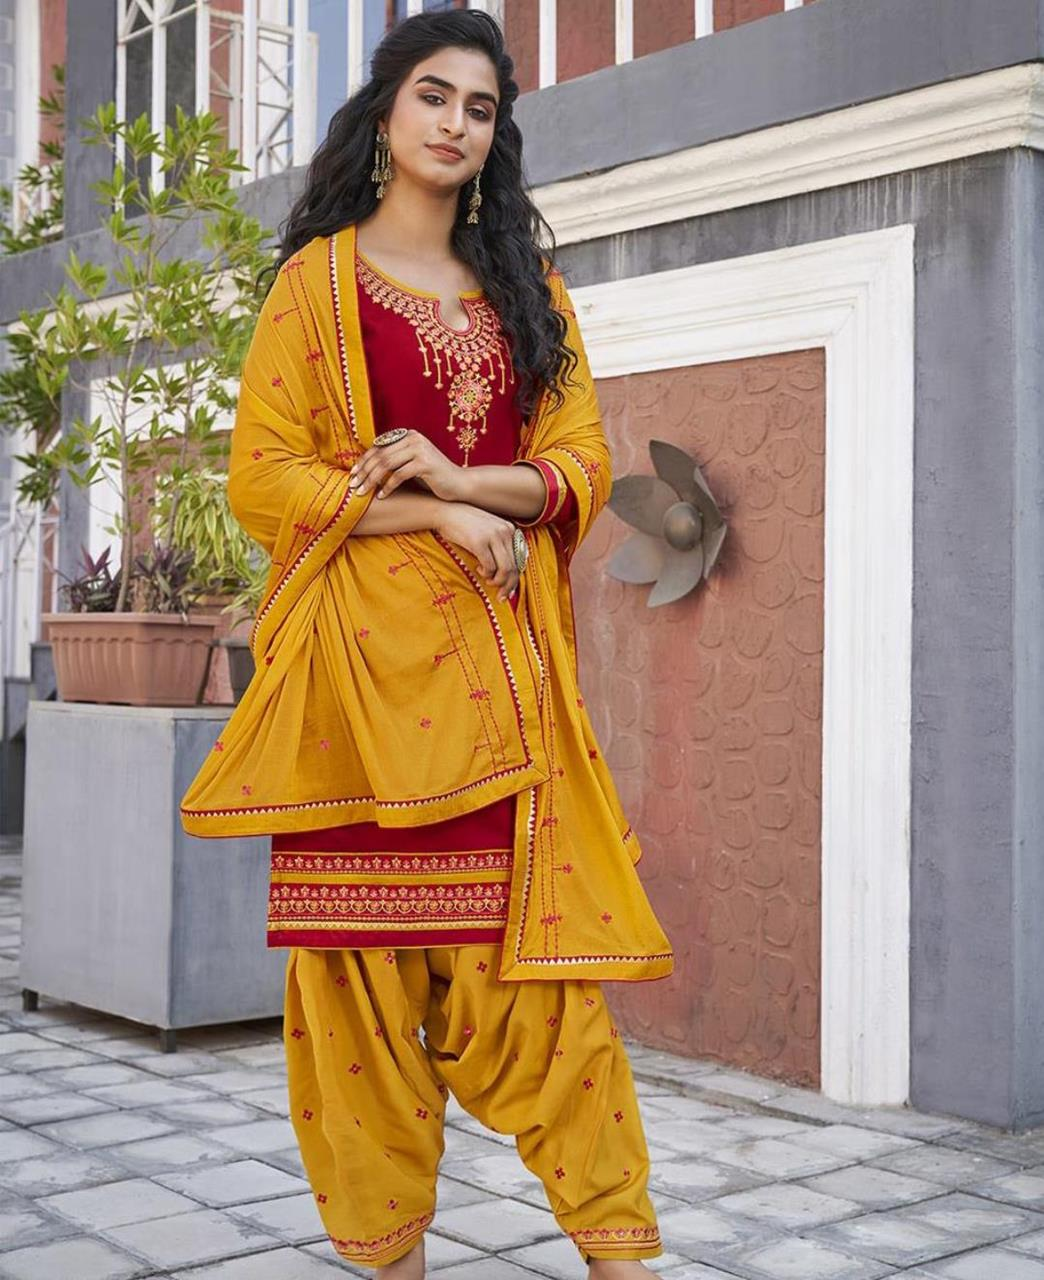 Zari Cotton Patiyala Suit Salwar in Red